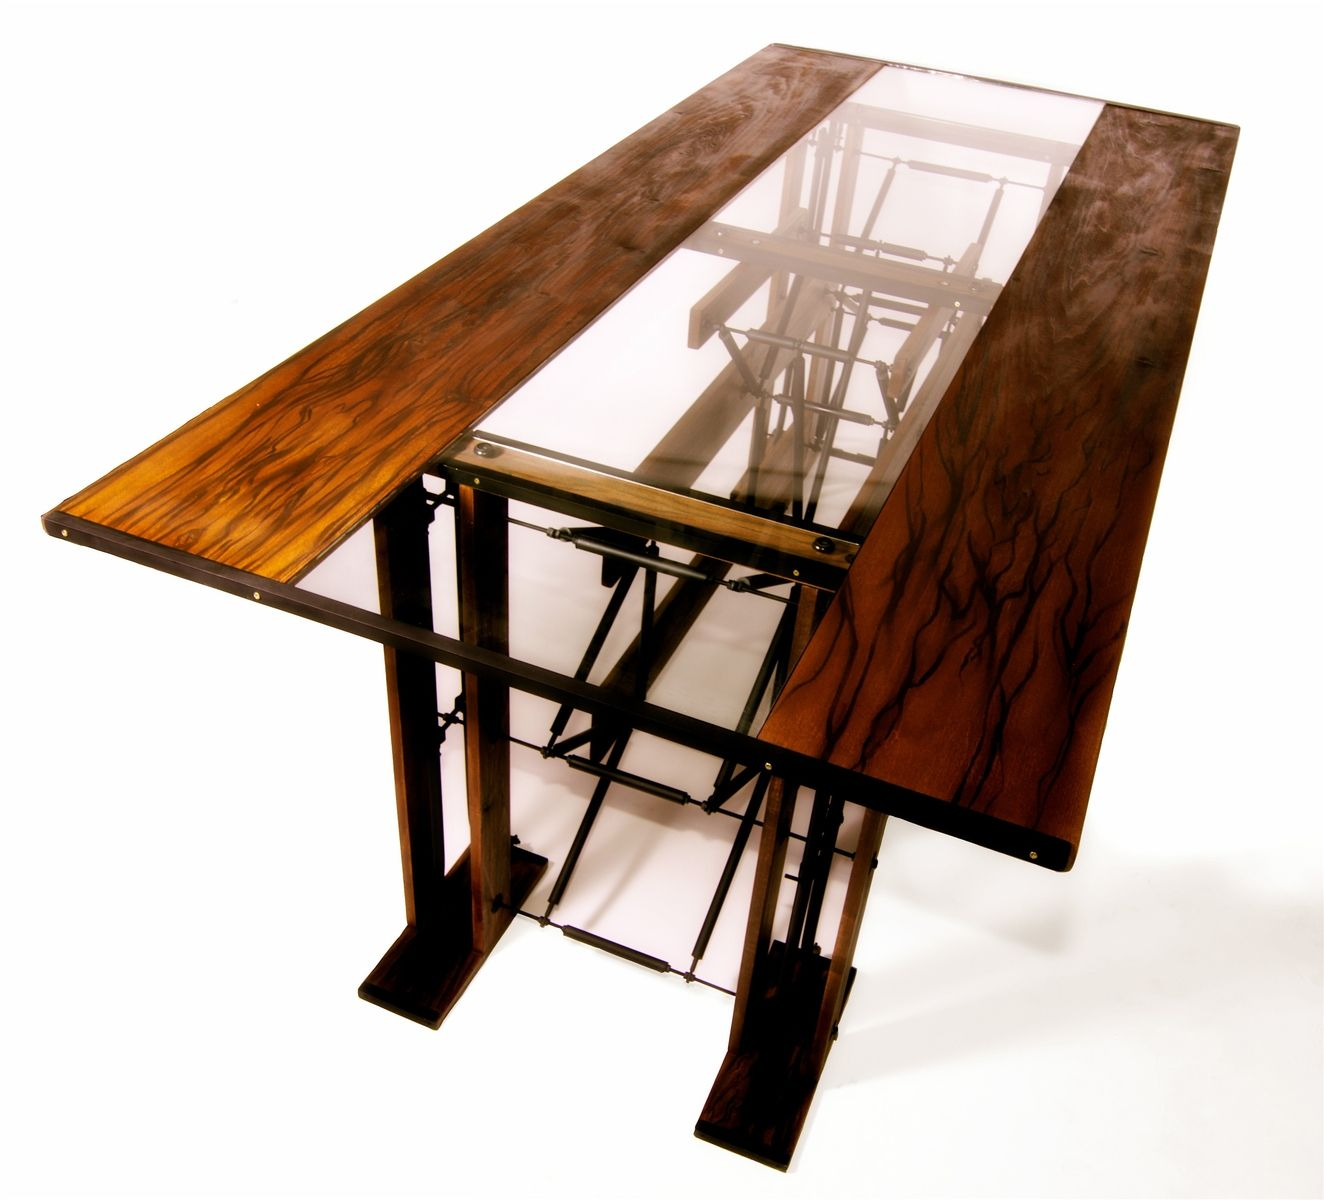 Hand made custom contemporary industrial eclectic dining for Modern wooden dining table designs